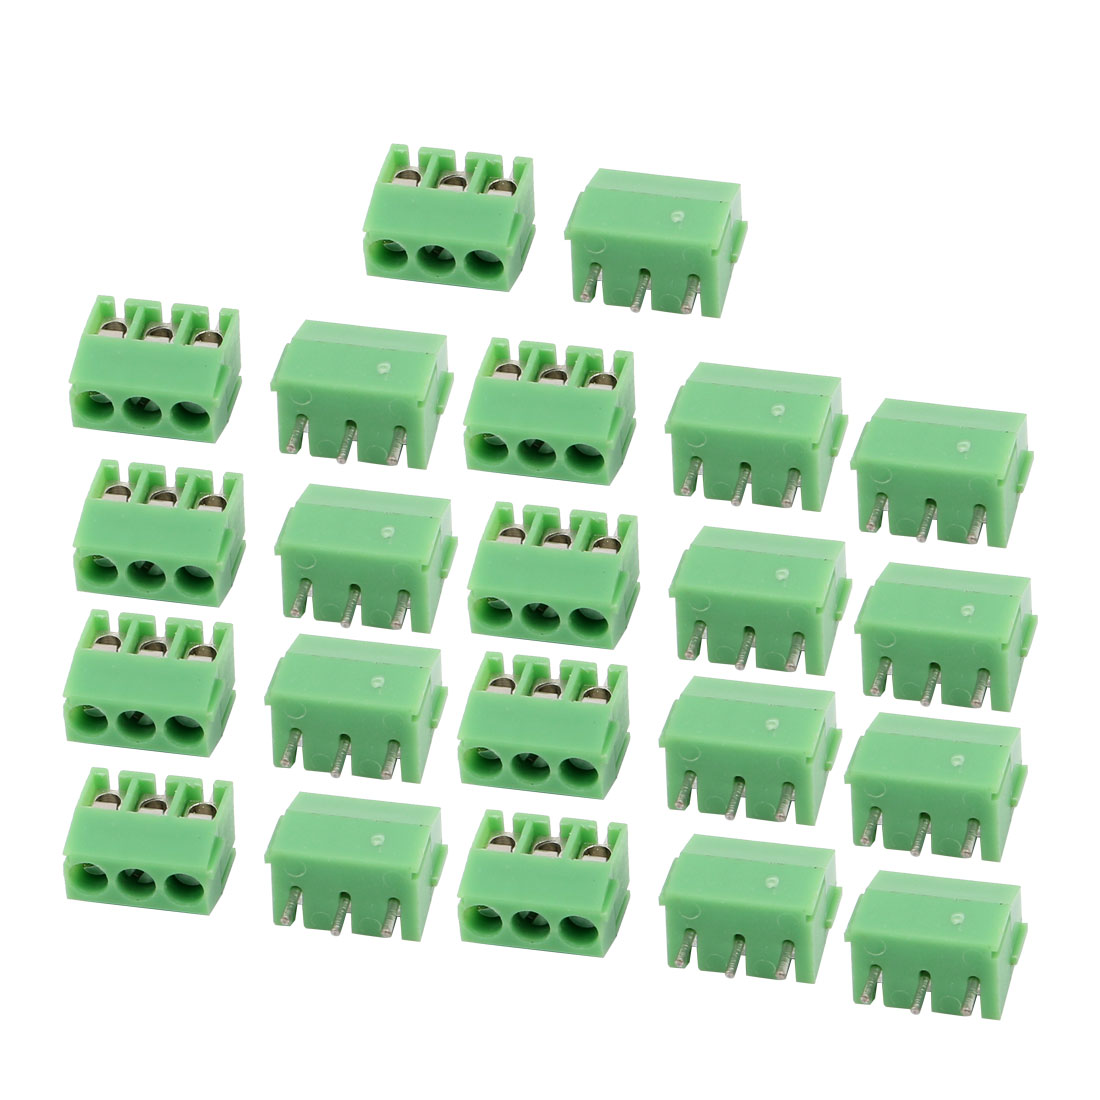 22Pcs AC 300V 10A 3.5mm Pitch 3P Terminal Block PCB Mount Wire Connection